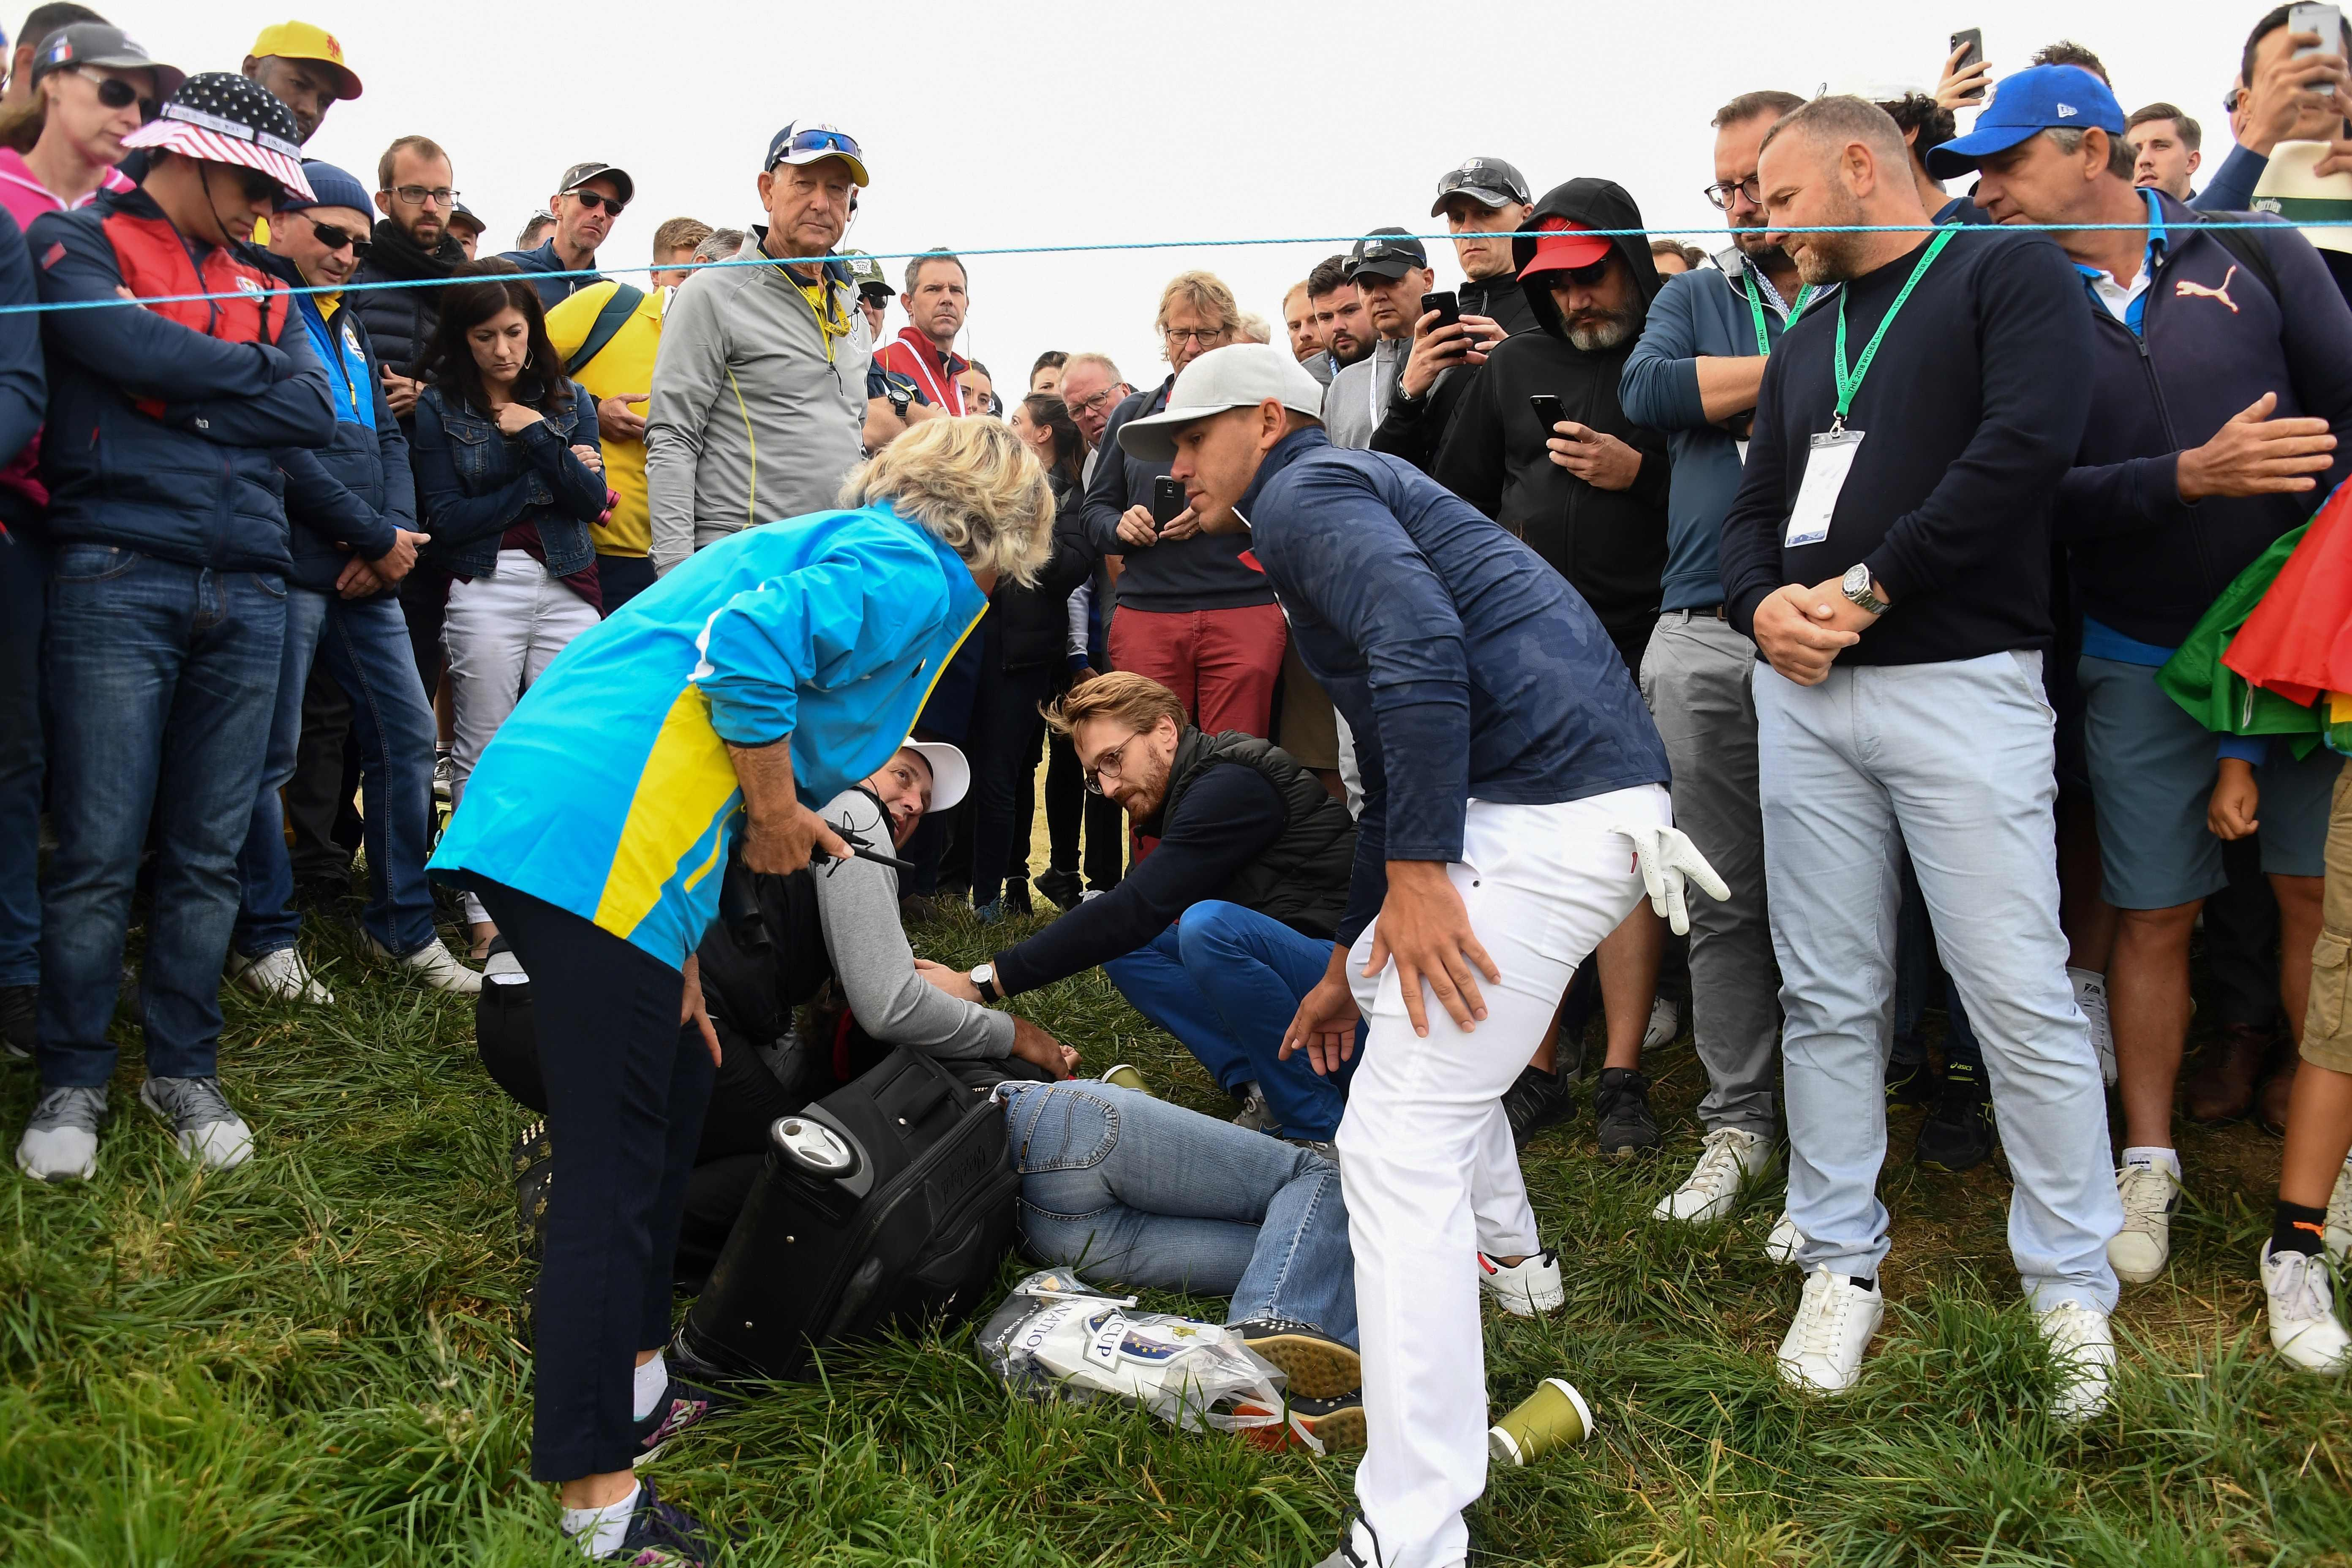 """Koepka has also revealed he has been left """"heartbroken"""" after his shot caused the injury to Remande"""